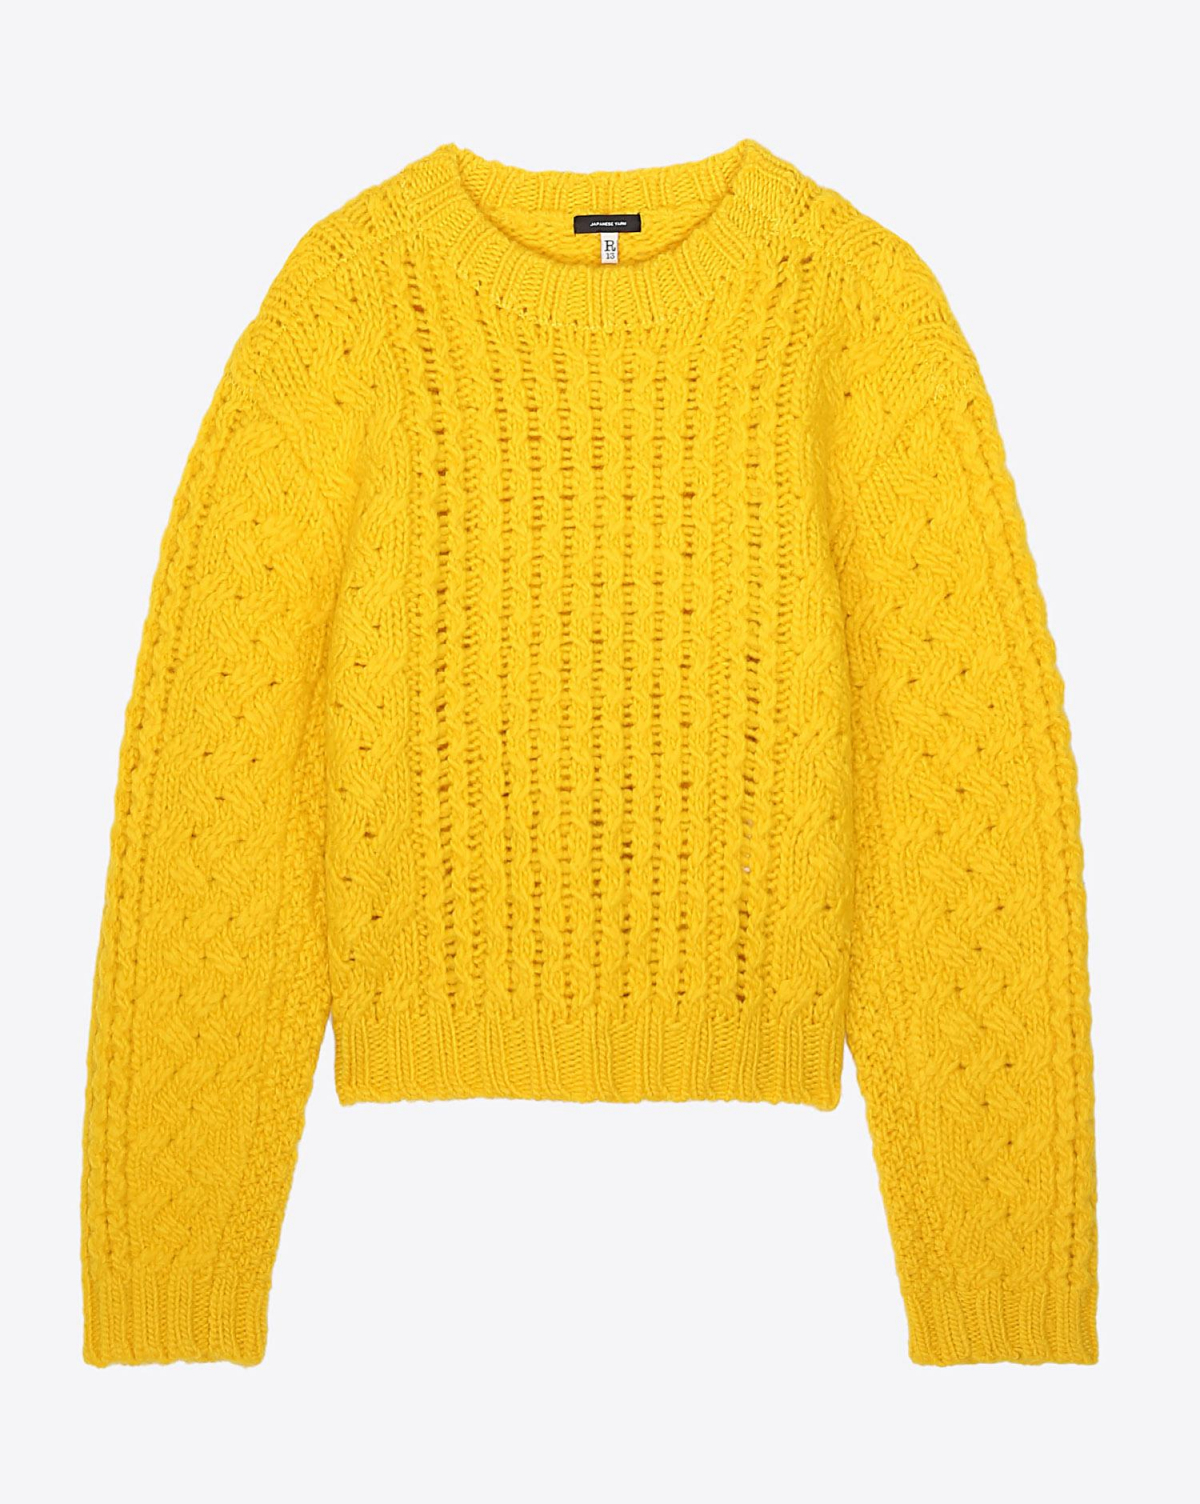 R13 Denim Collection Cropped Aran Sweater - Yellow